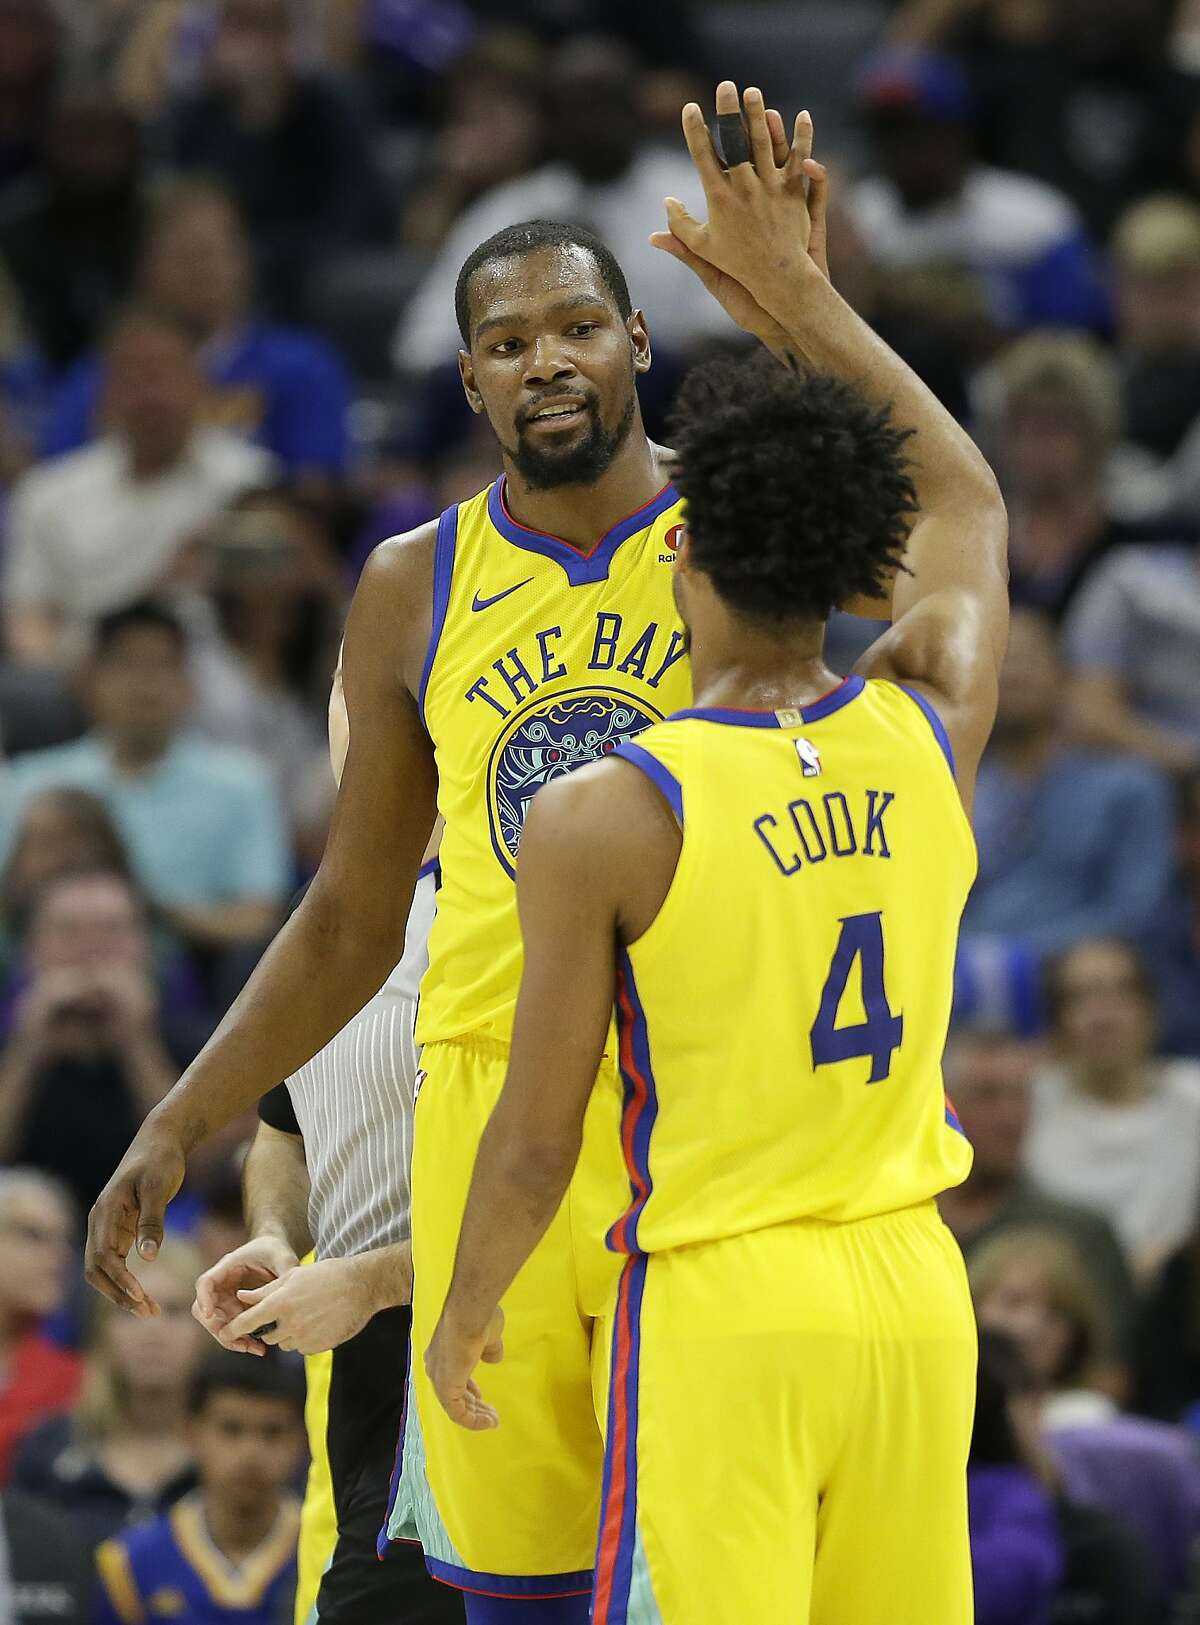 Golden State Warriors forward Kevin Durant gets a high five from teammate Quinn Cook after scoring against the Sacramento Kings during the second half of an NBA basketball game Saturday, March 31, 2018, in Sacramento, Calif. The Warriors won 112-96.